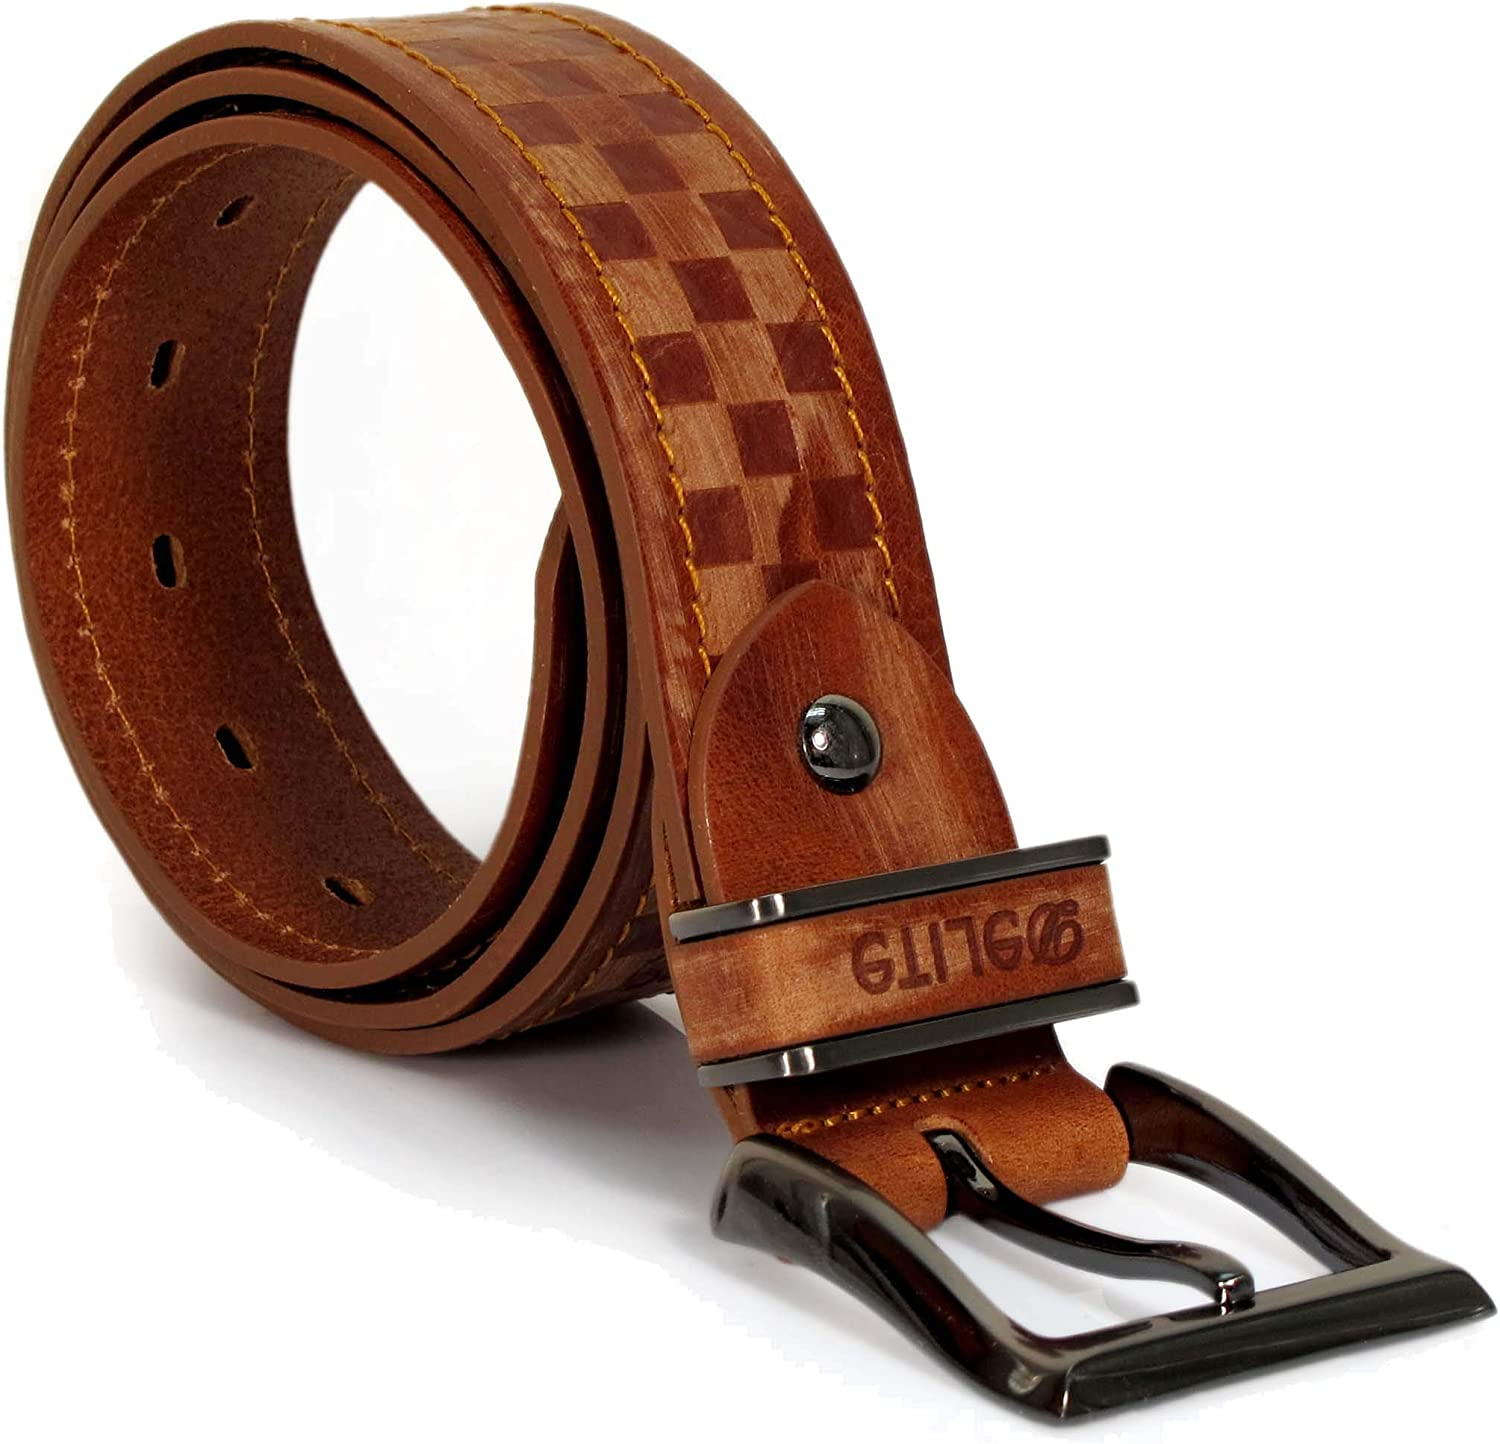 CU4 Mens Real Genuine Leather Belt Black Brown White 1.5 Wide S-XL Casual Jeans